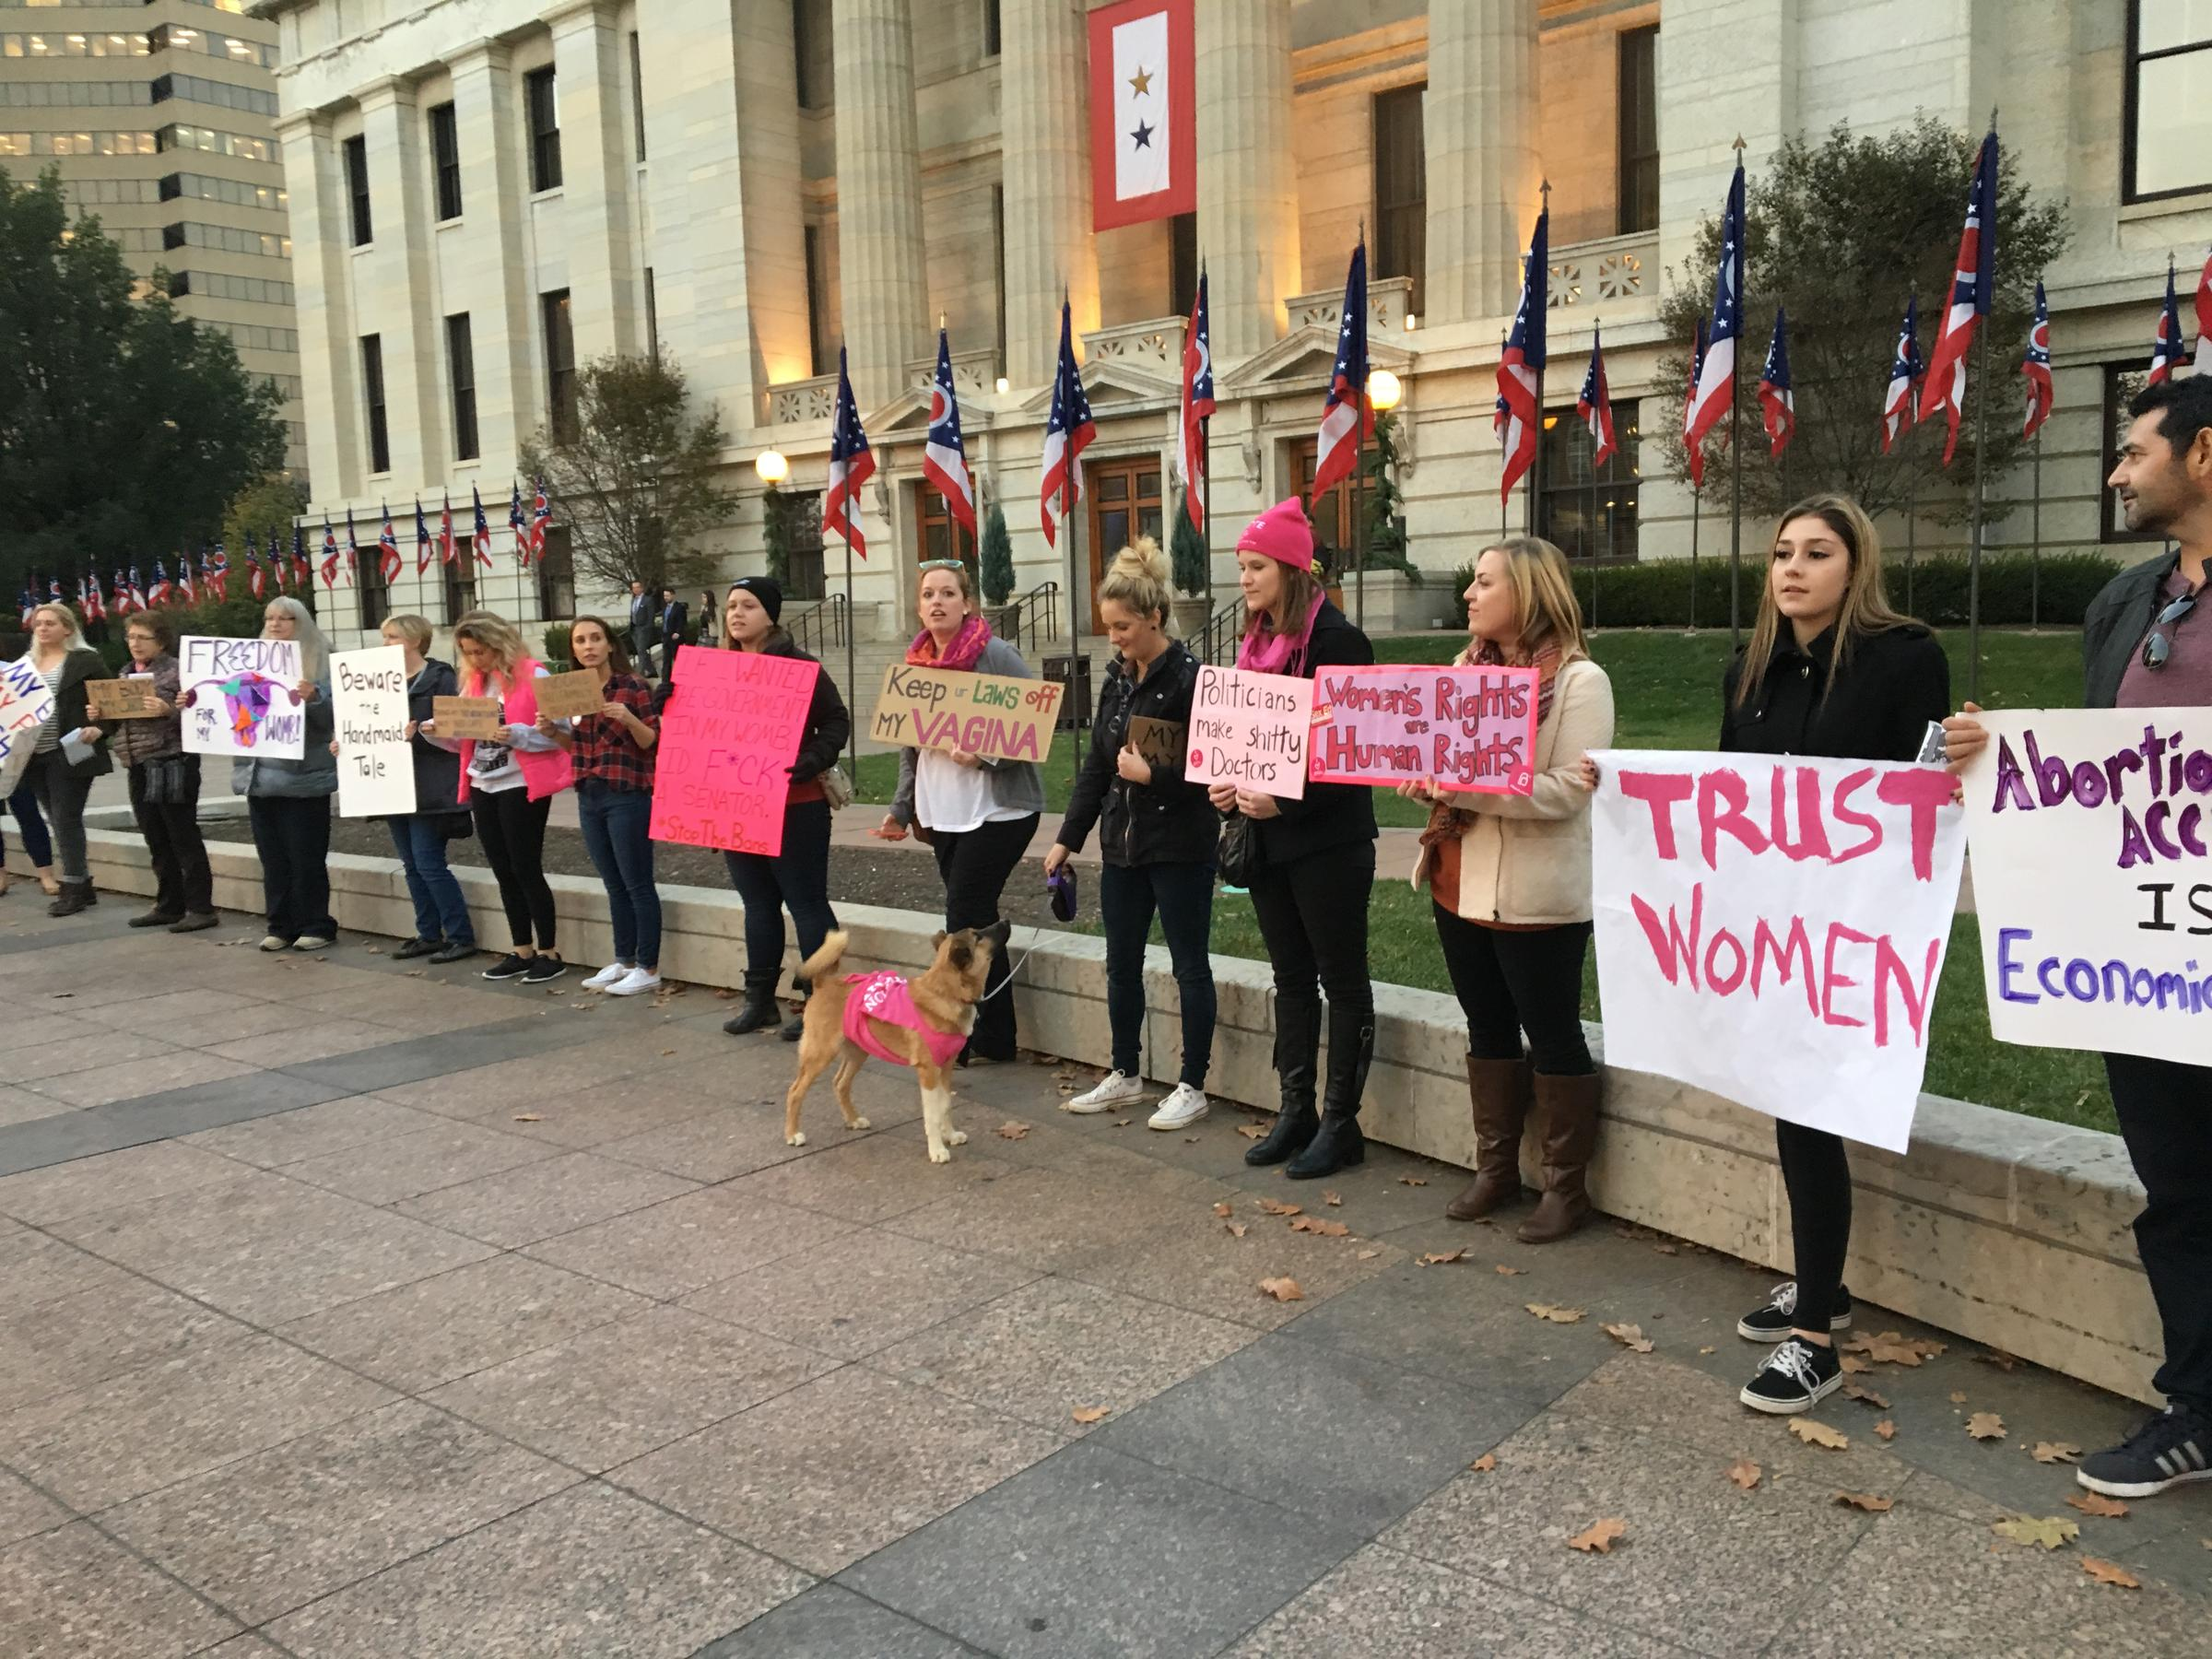 Abortion clinic protest pictures